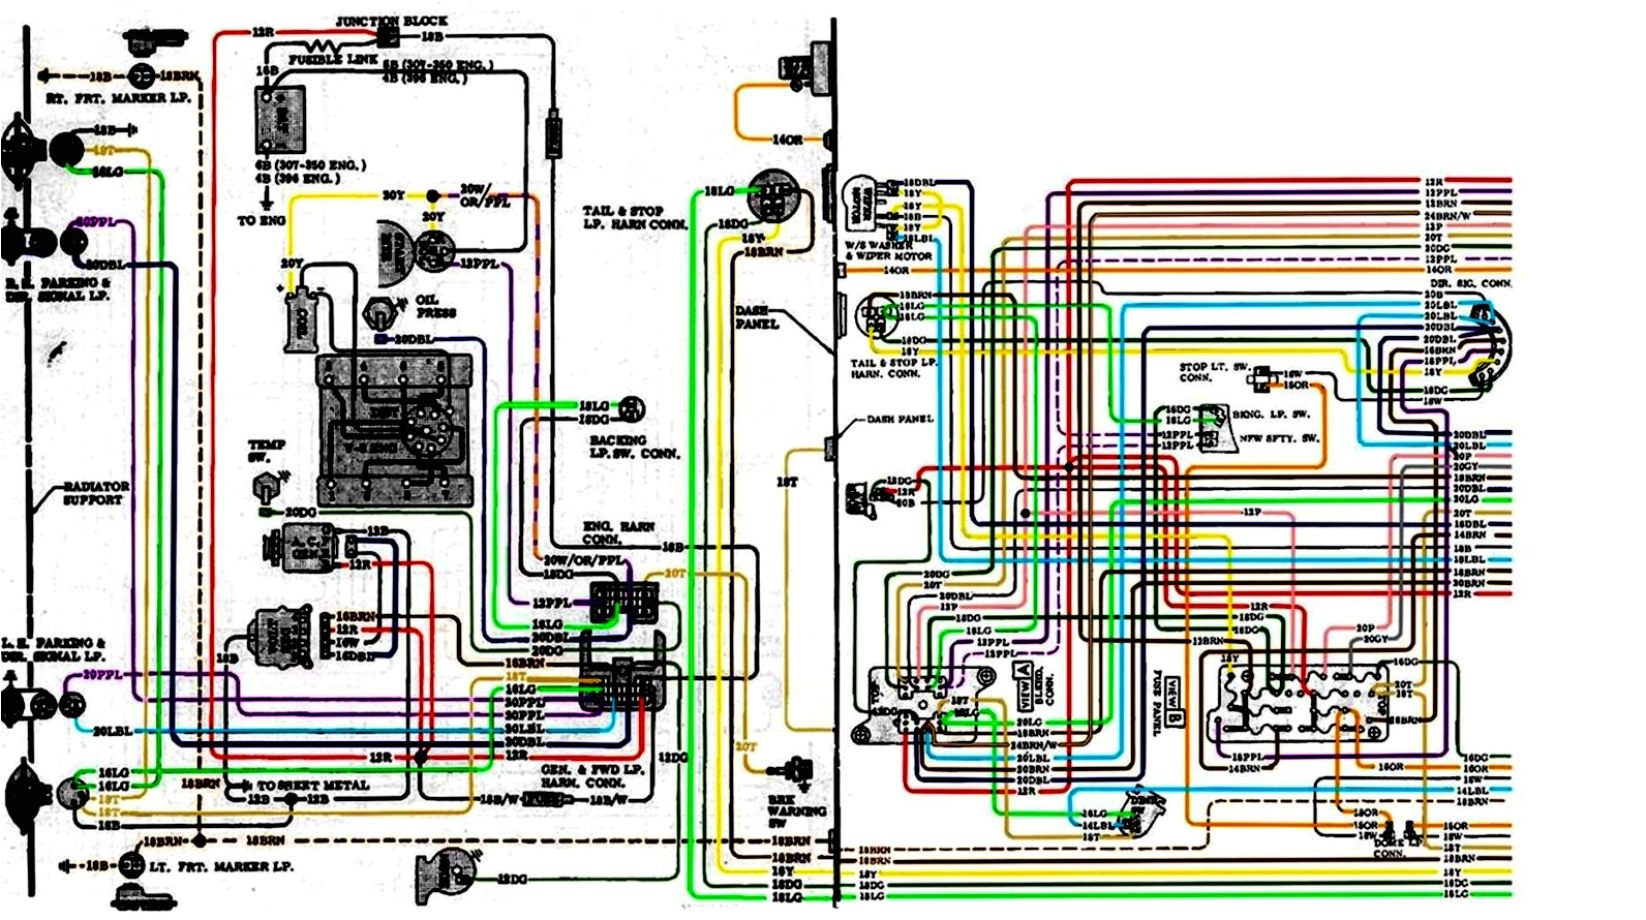 1971 c 10 wiring diagram wiring diagram used 1971 c 10 fuse box diagram